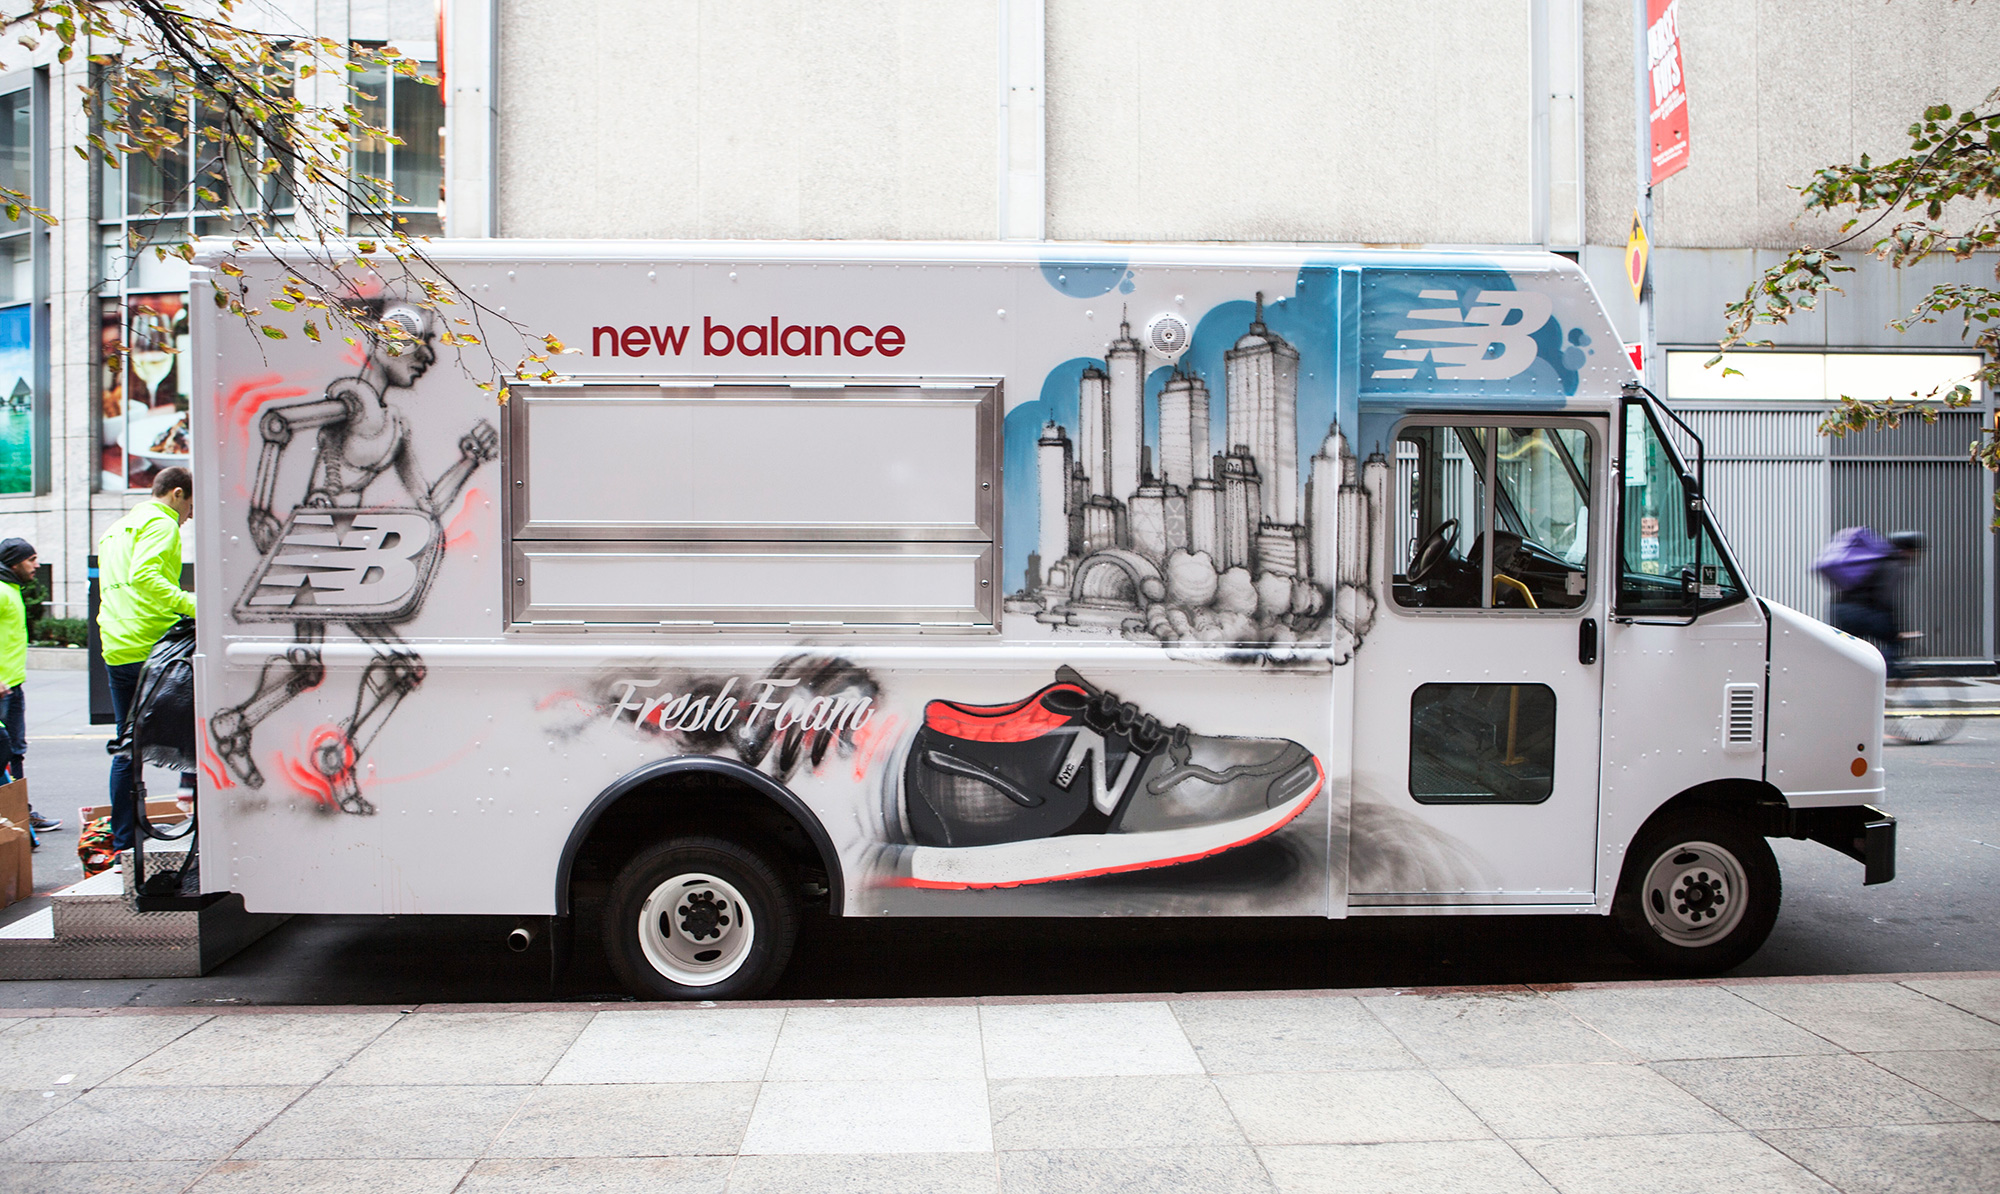 New Balance Street Art for Event in NY